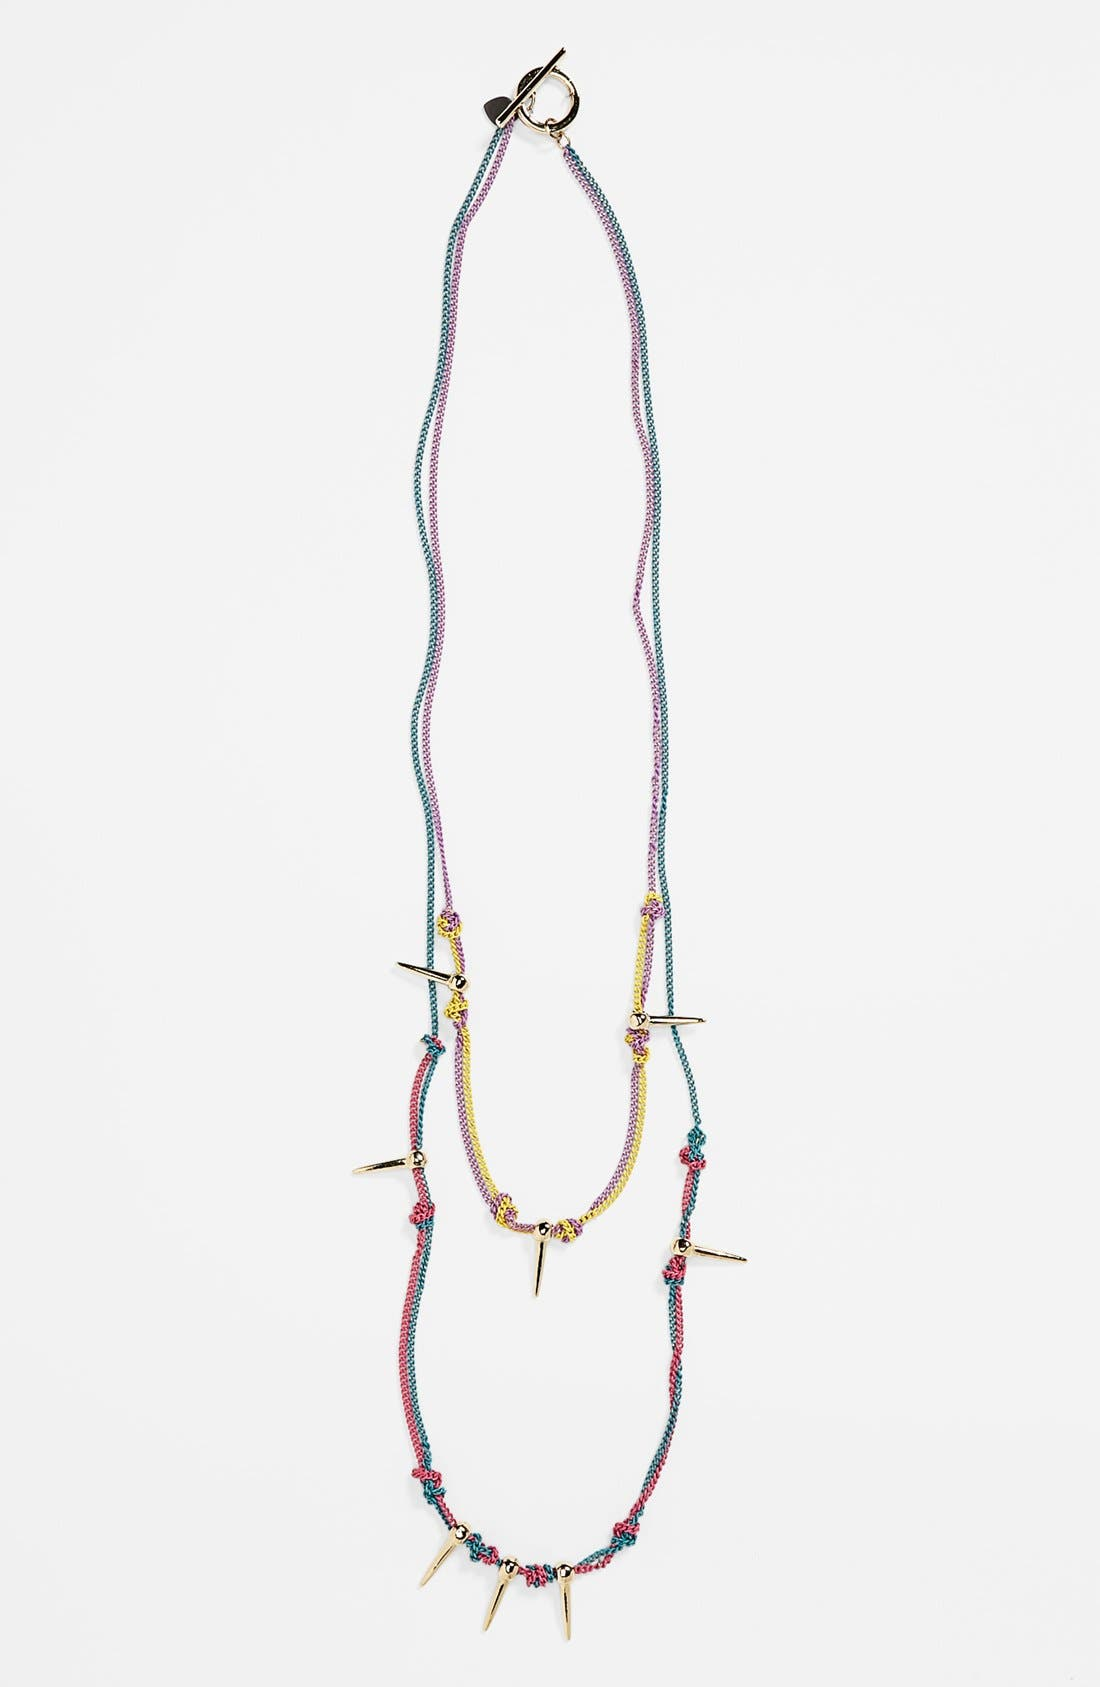 Alternate Image 1 Selected - Bonnie Jonas Spiked Multistrand Necklace